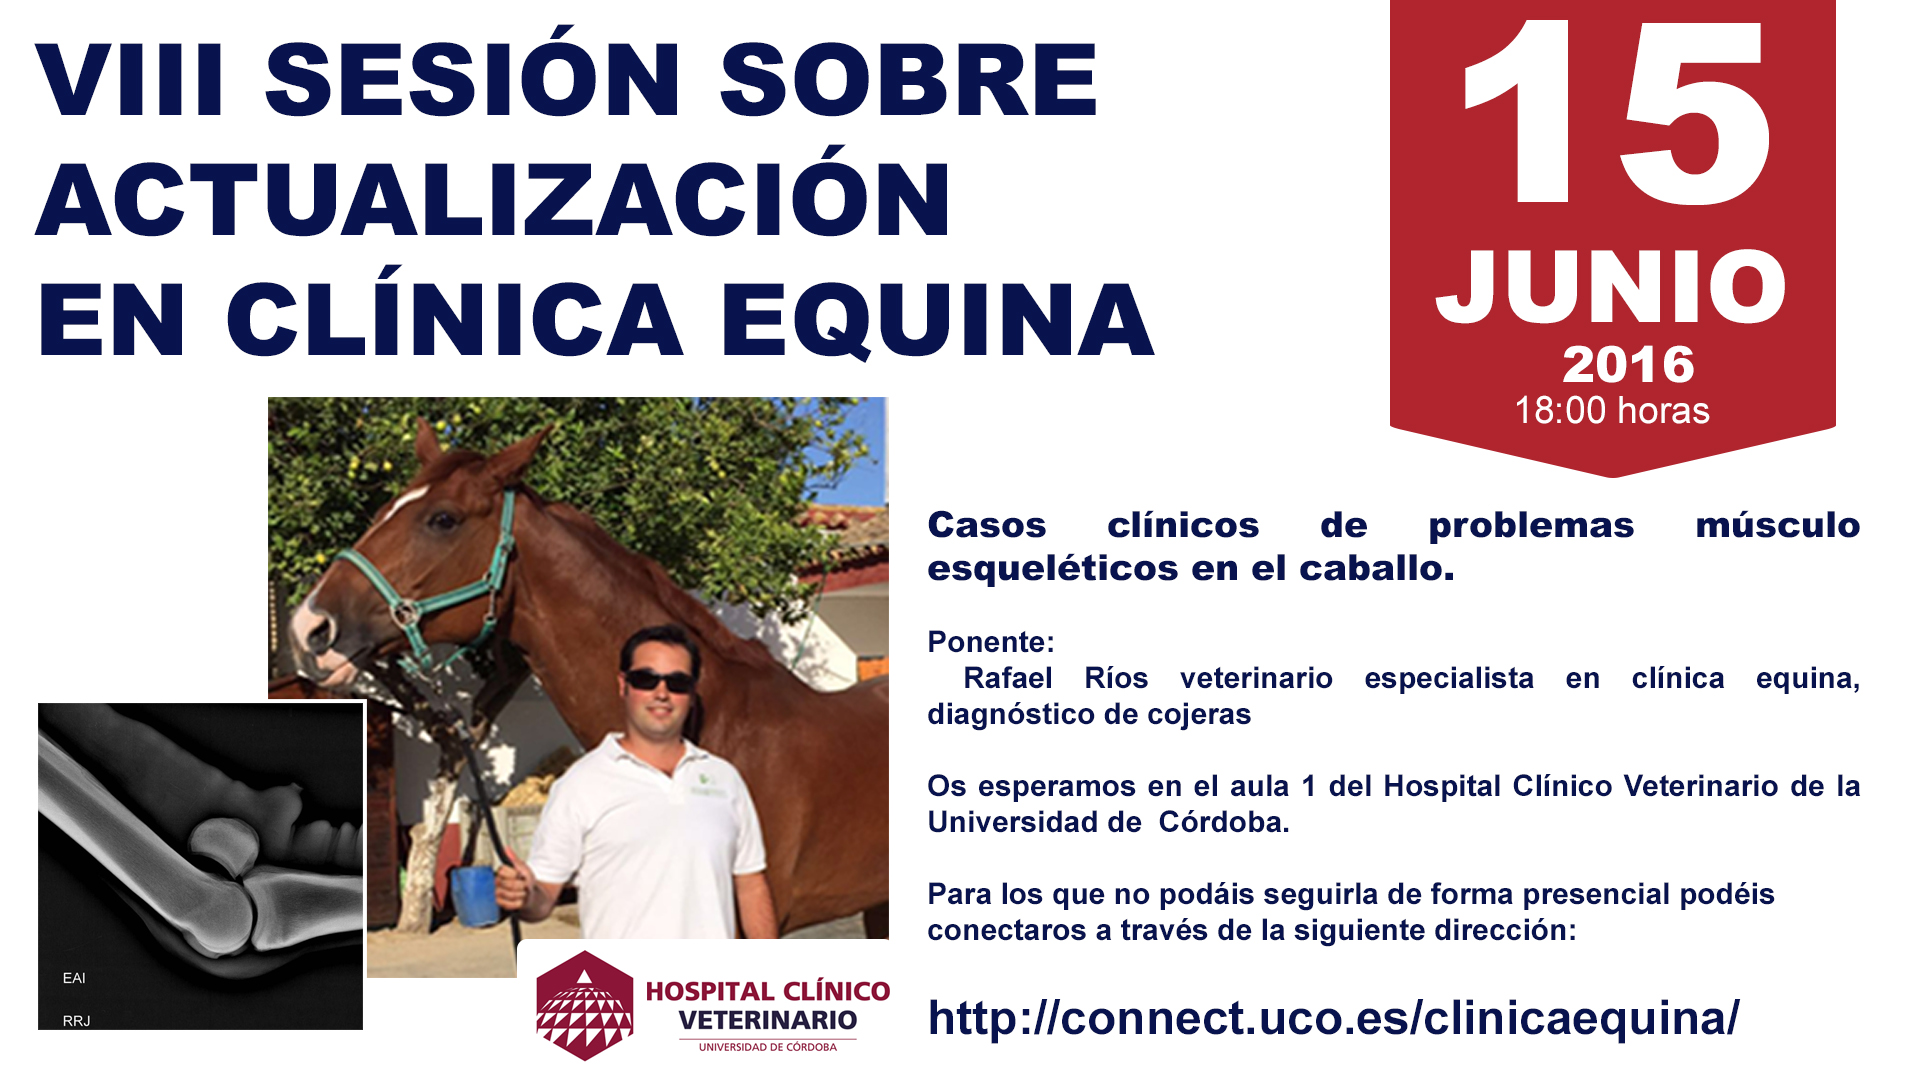 8_SESIONCLINICAEQUINAHCV (2)